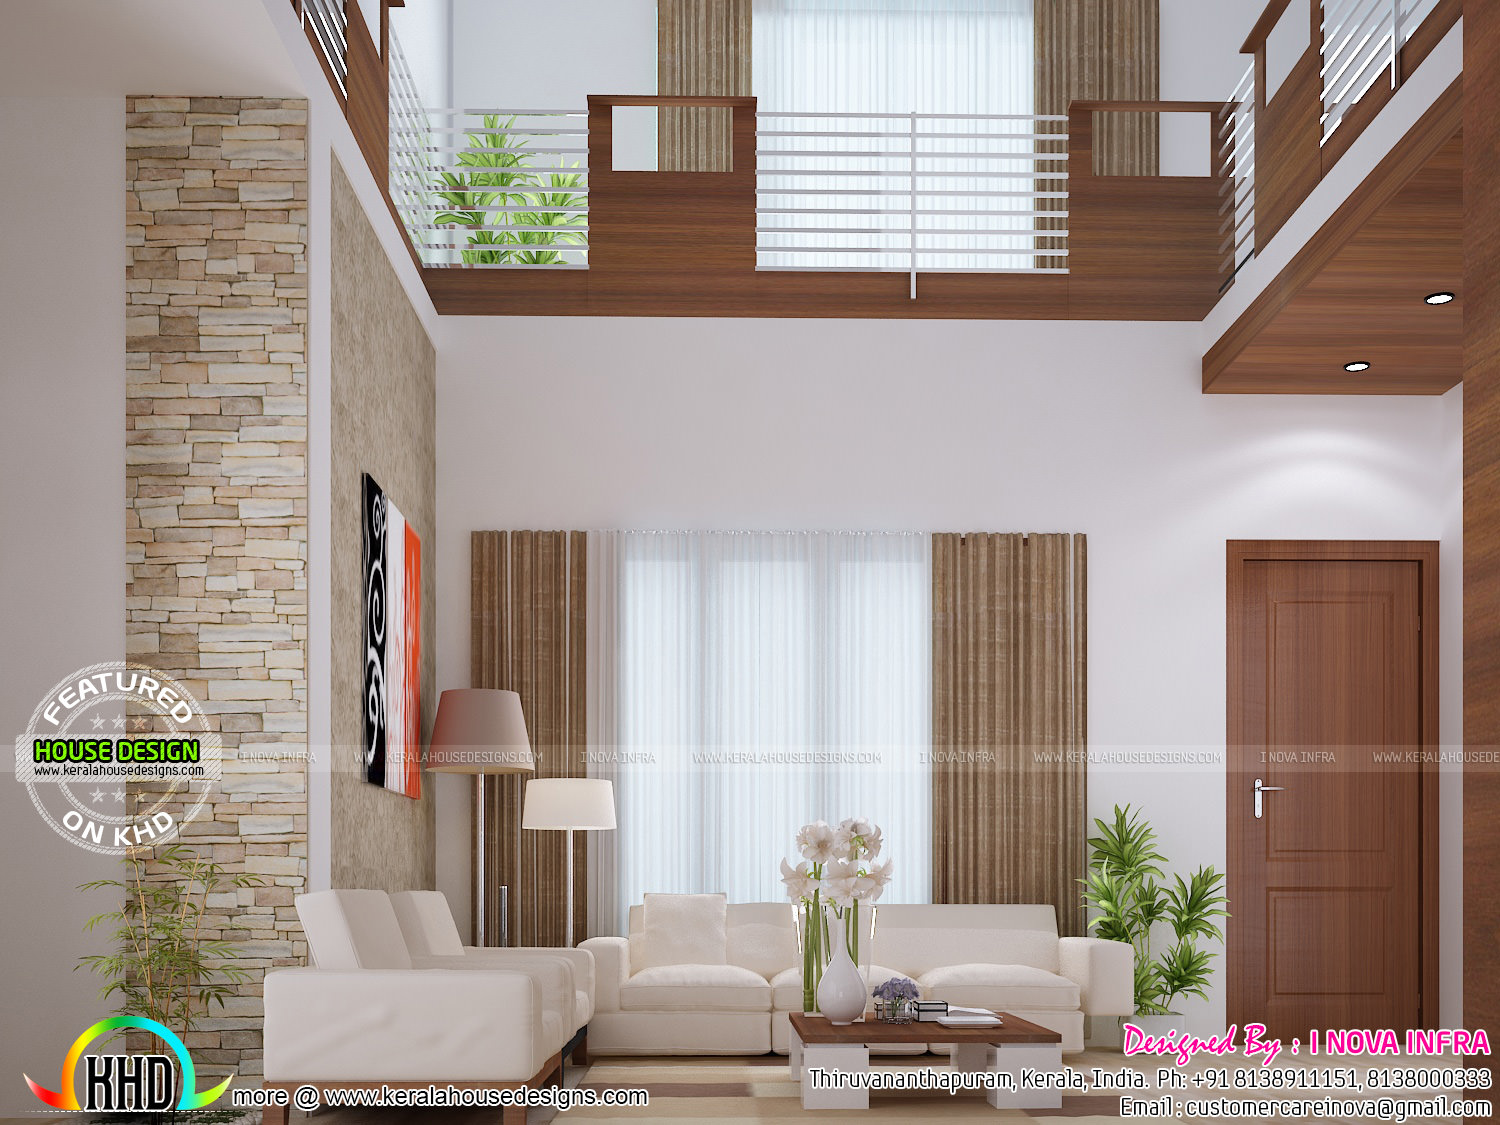 Balcony, dining, bedroom and staircase interior